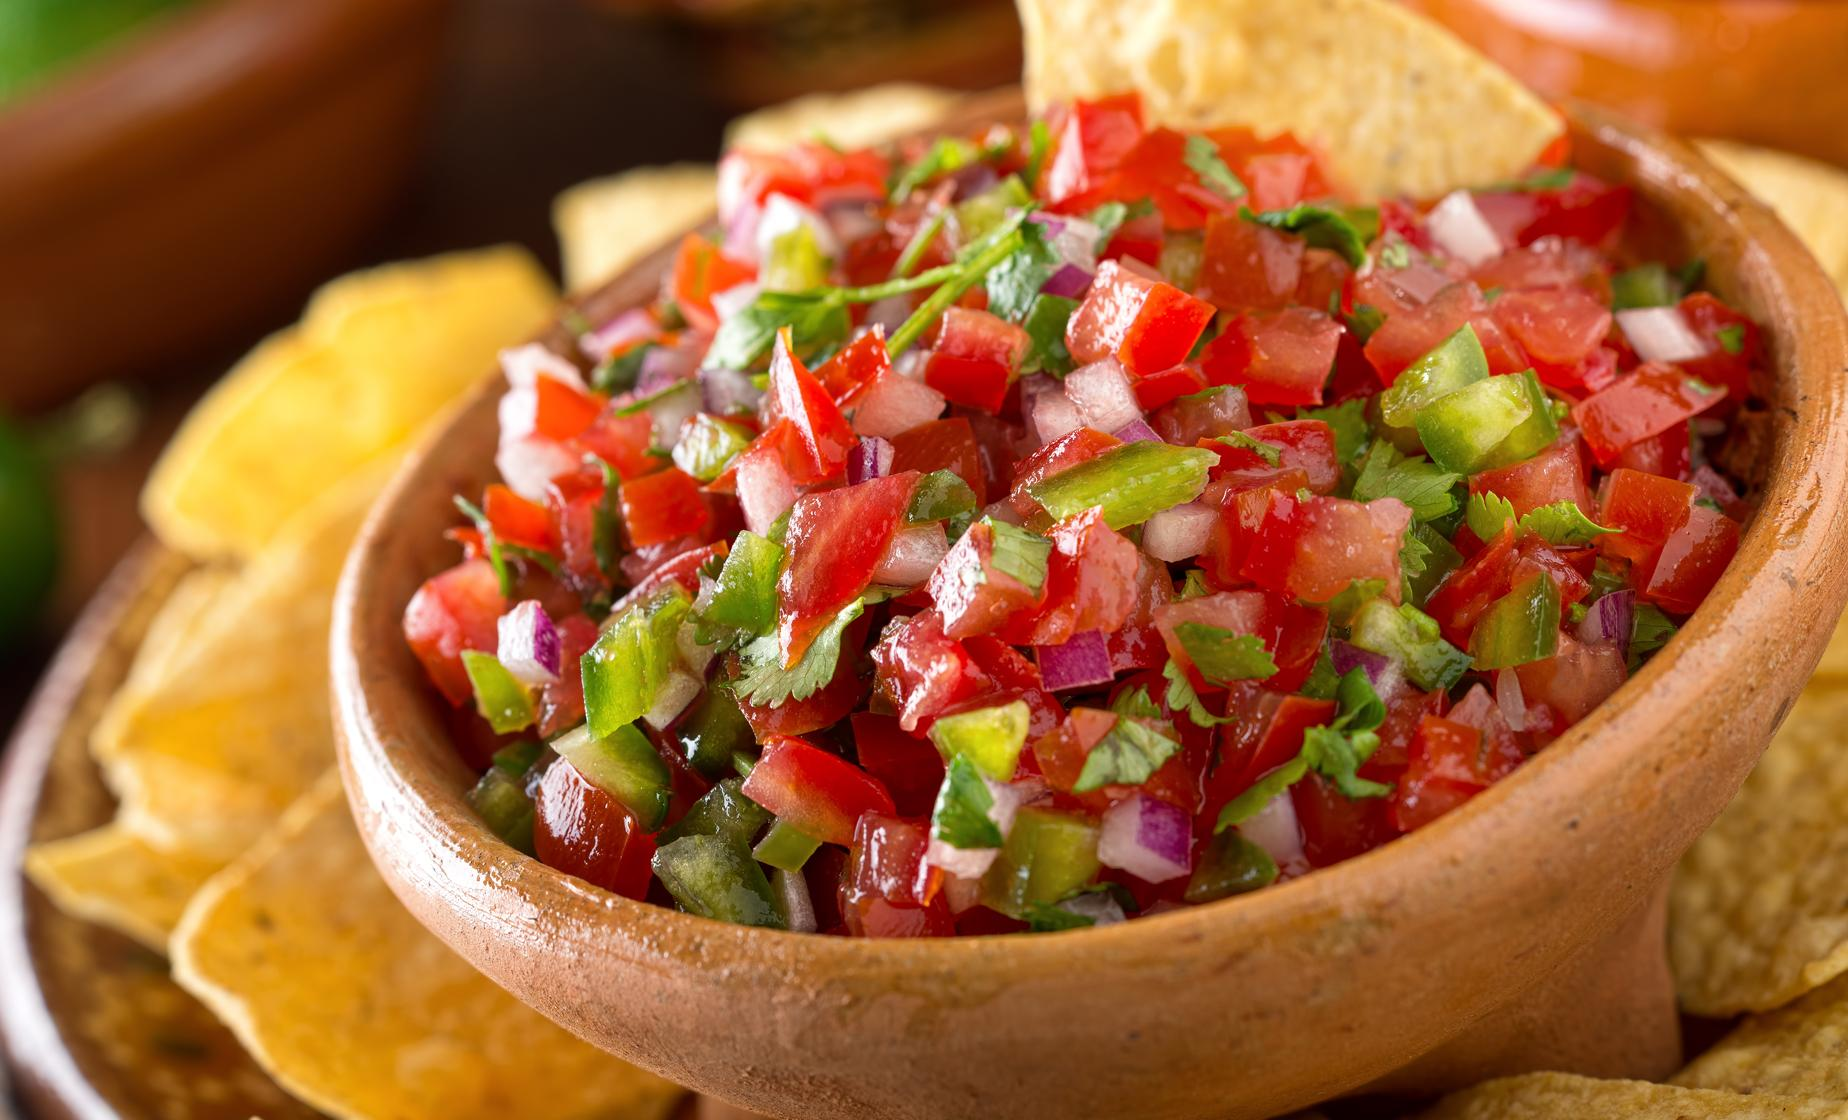 Salsa, Salsa and More Salsa!